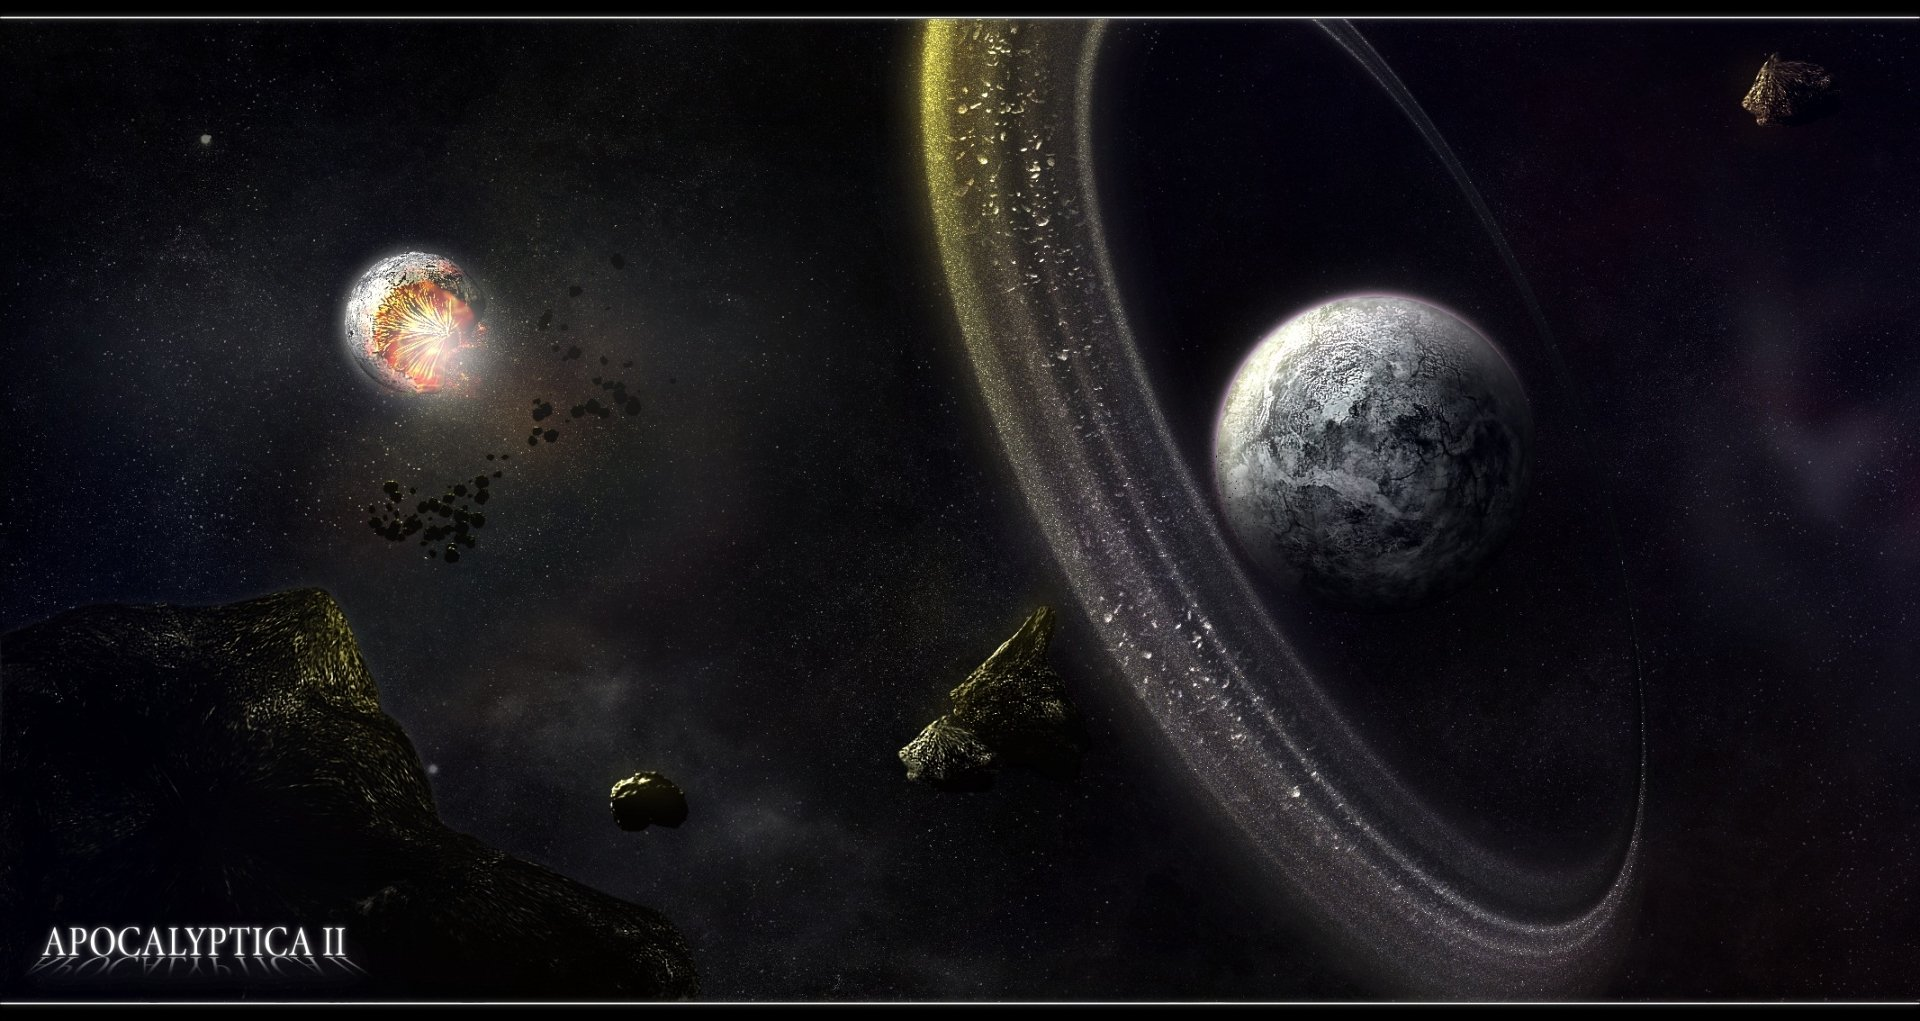 Iphone 5 Wallpaper Star Trek Apocalyptica Ll Full Hd Wallpaper And Background